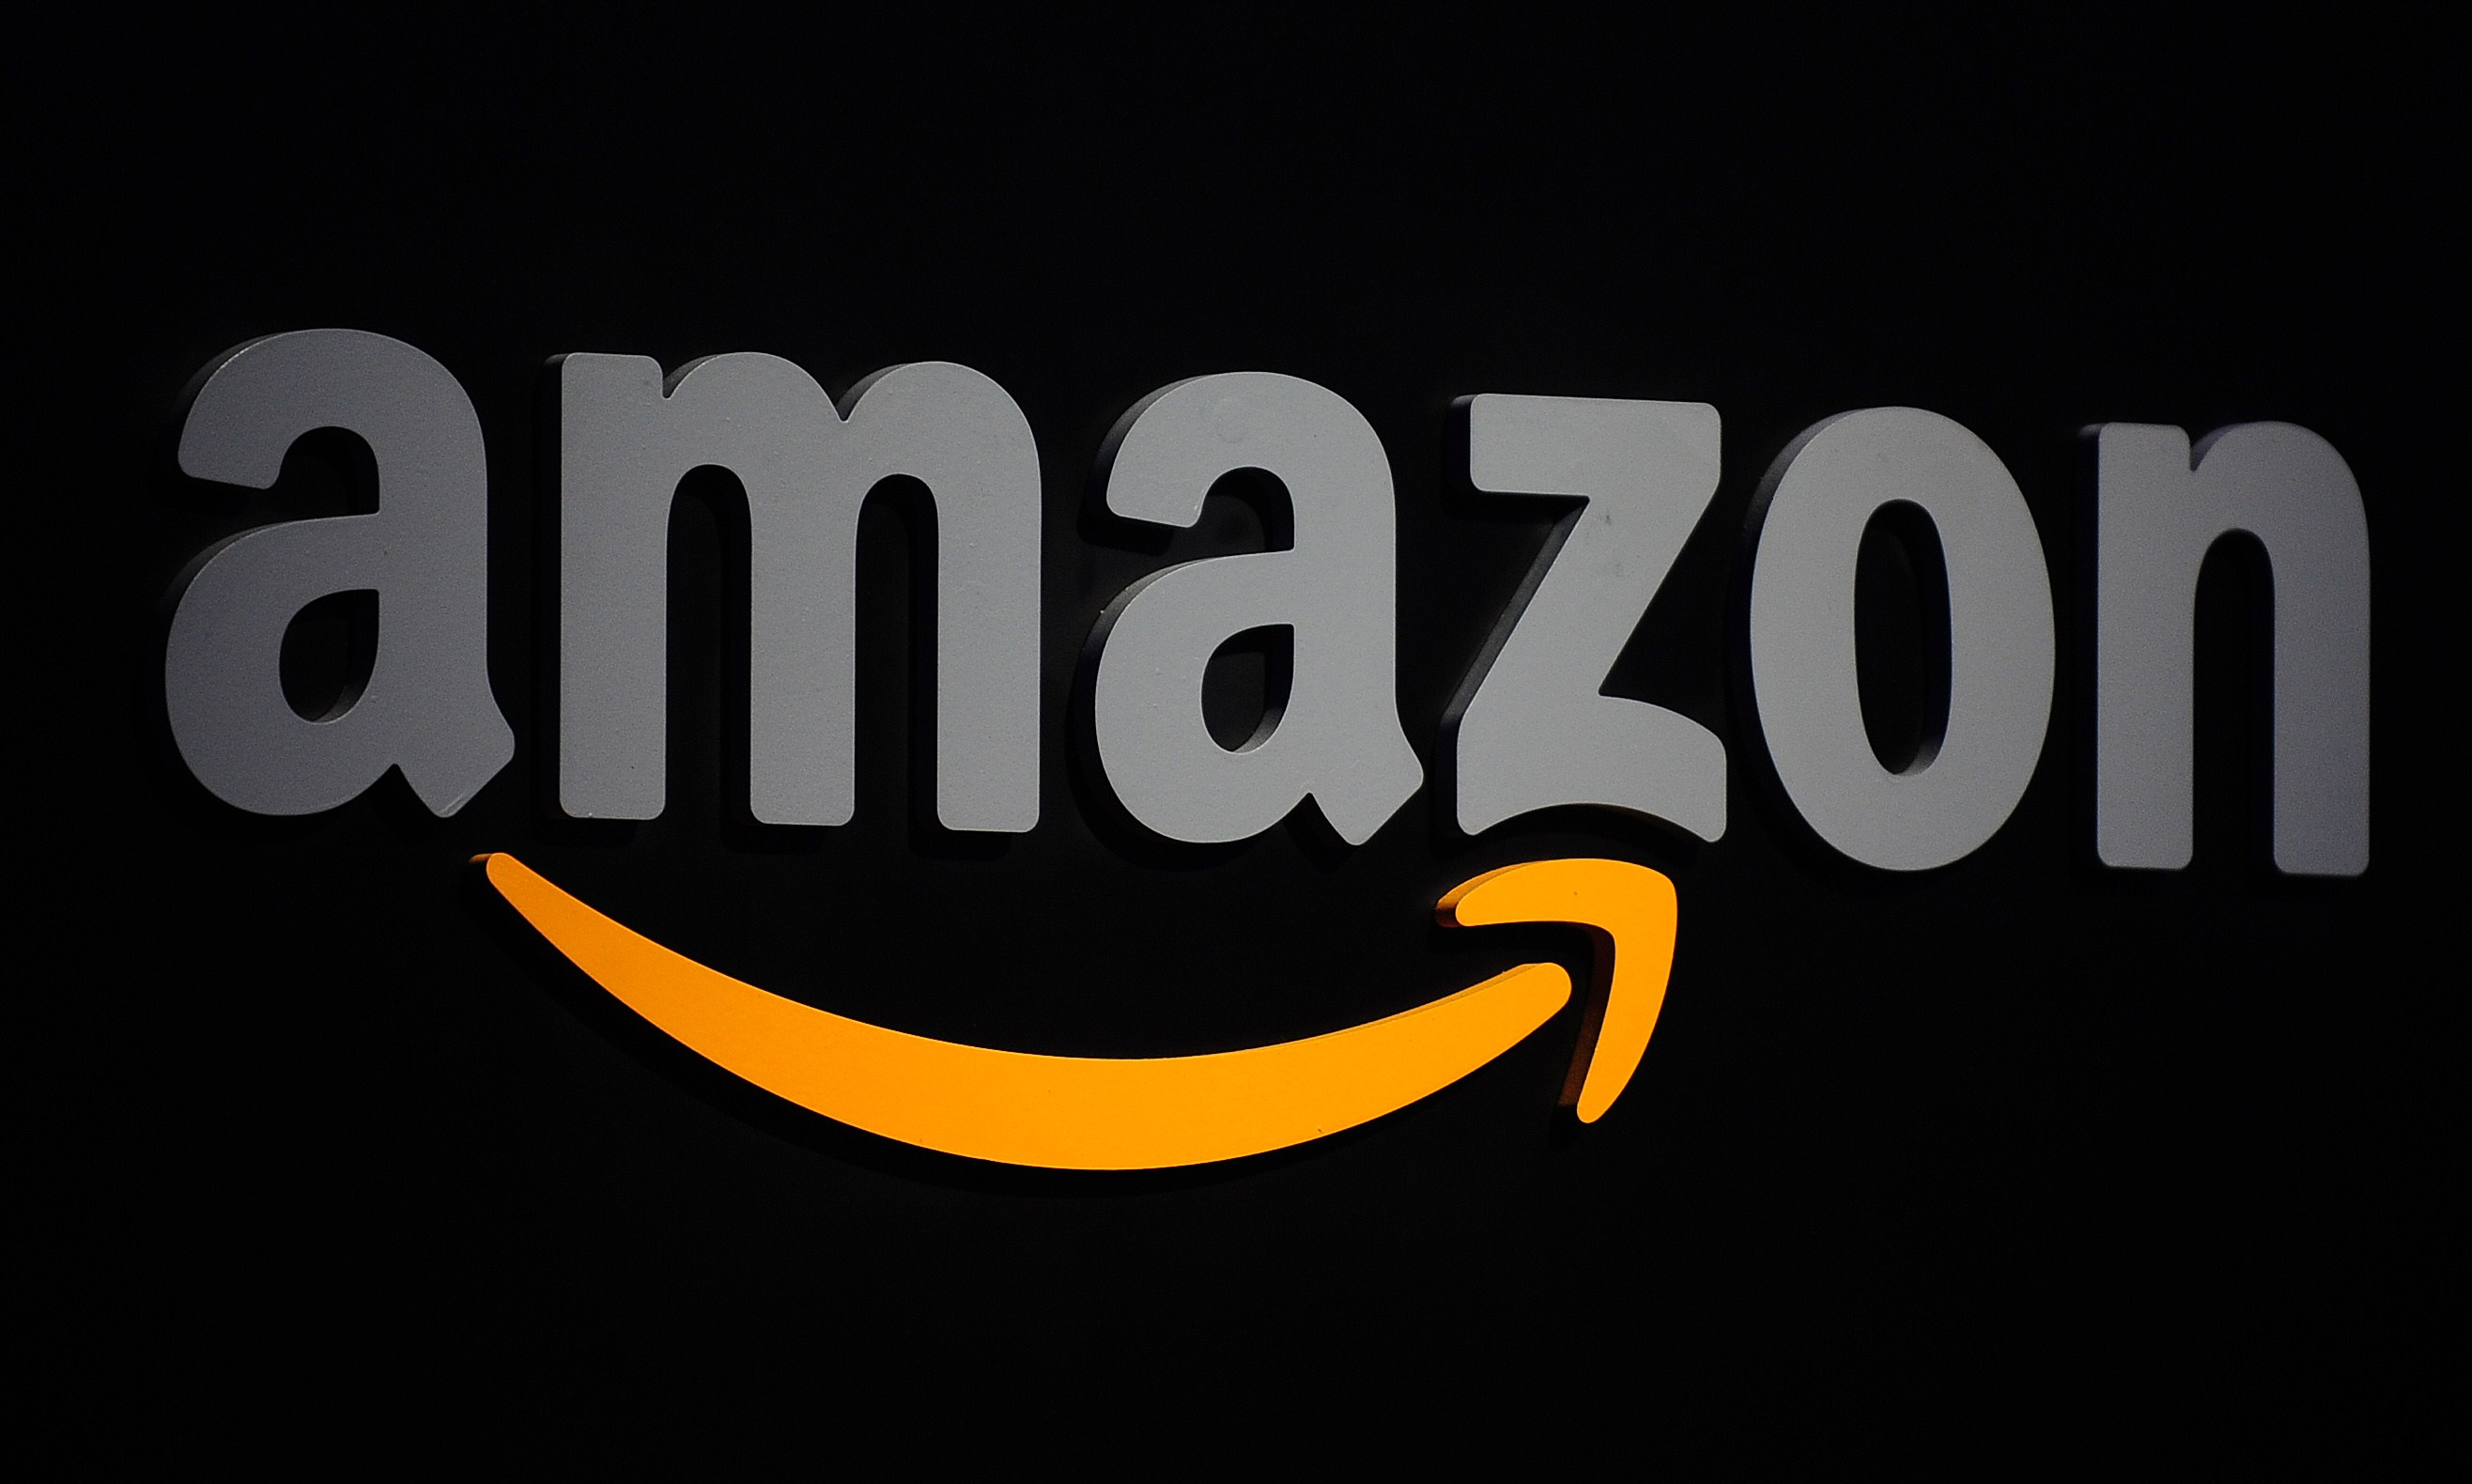 Amazon accused of 'Big Brother' tactics over customer reviews